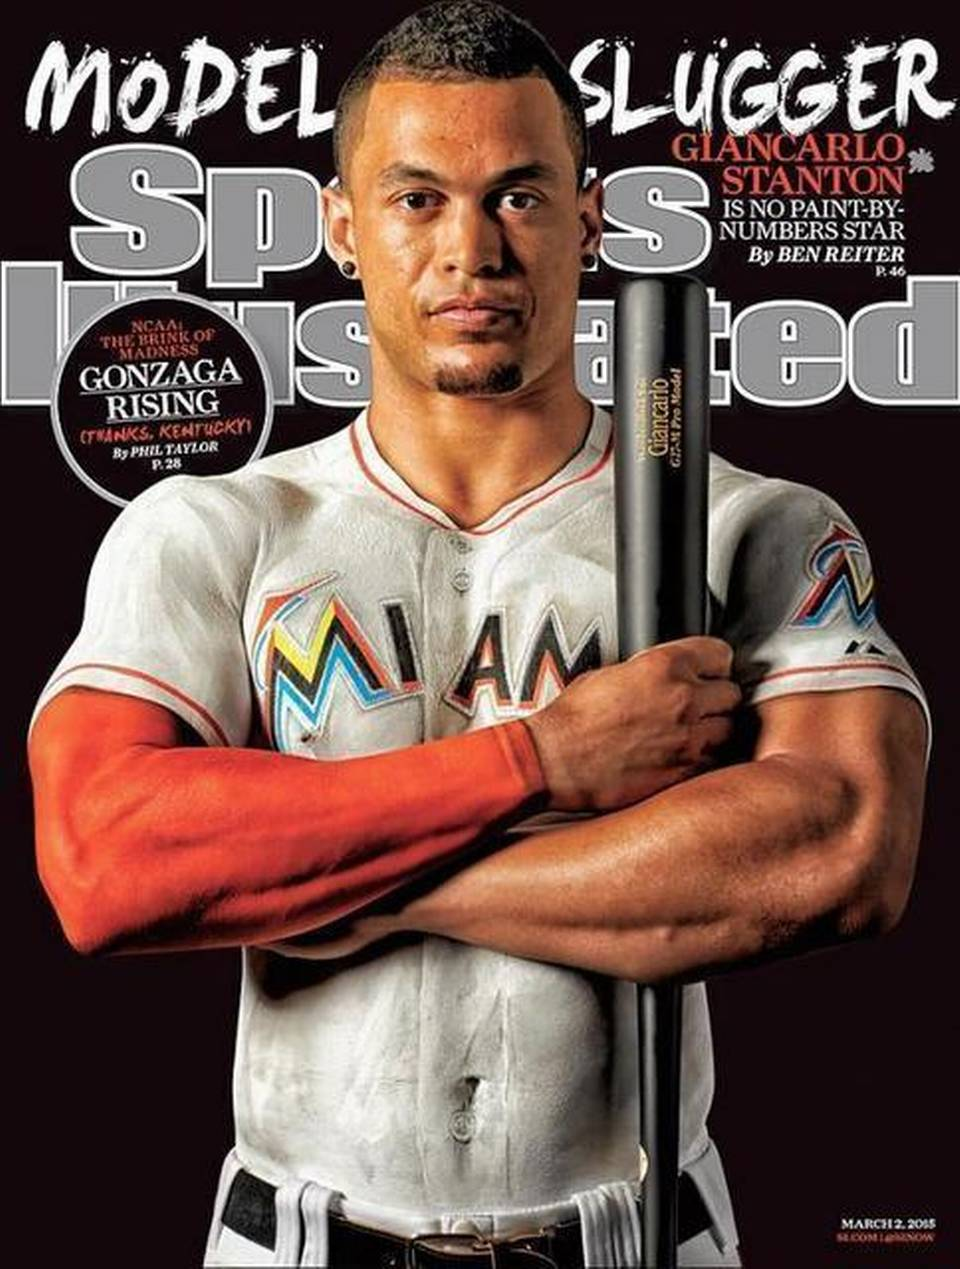 Paint-clad Marlins slugger Giancarlo Stanton covers latest issue ...